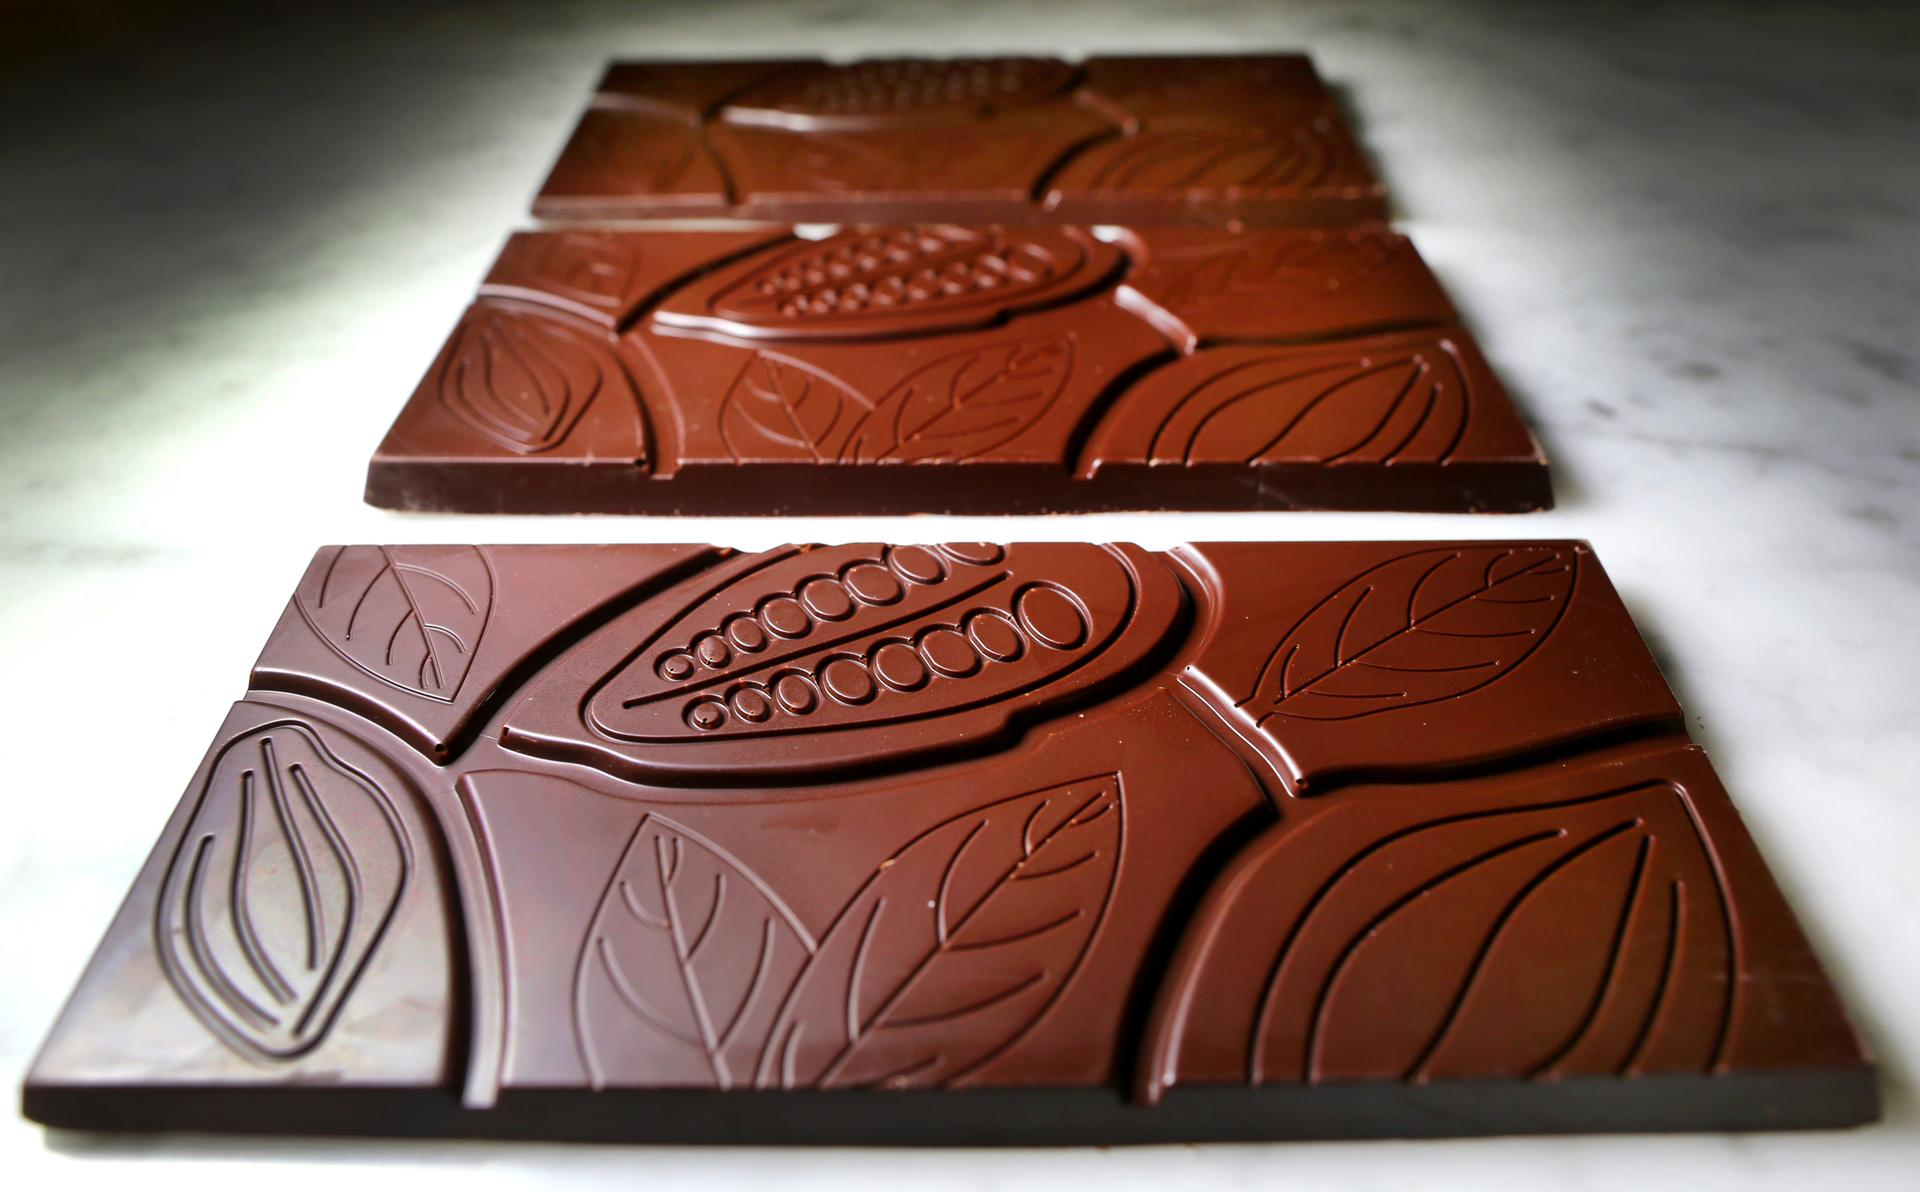 The quest for the Boston area's best chocolate shop - The Boston Globe